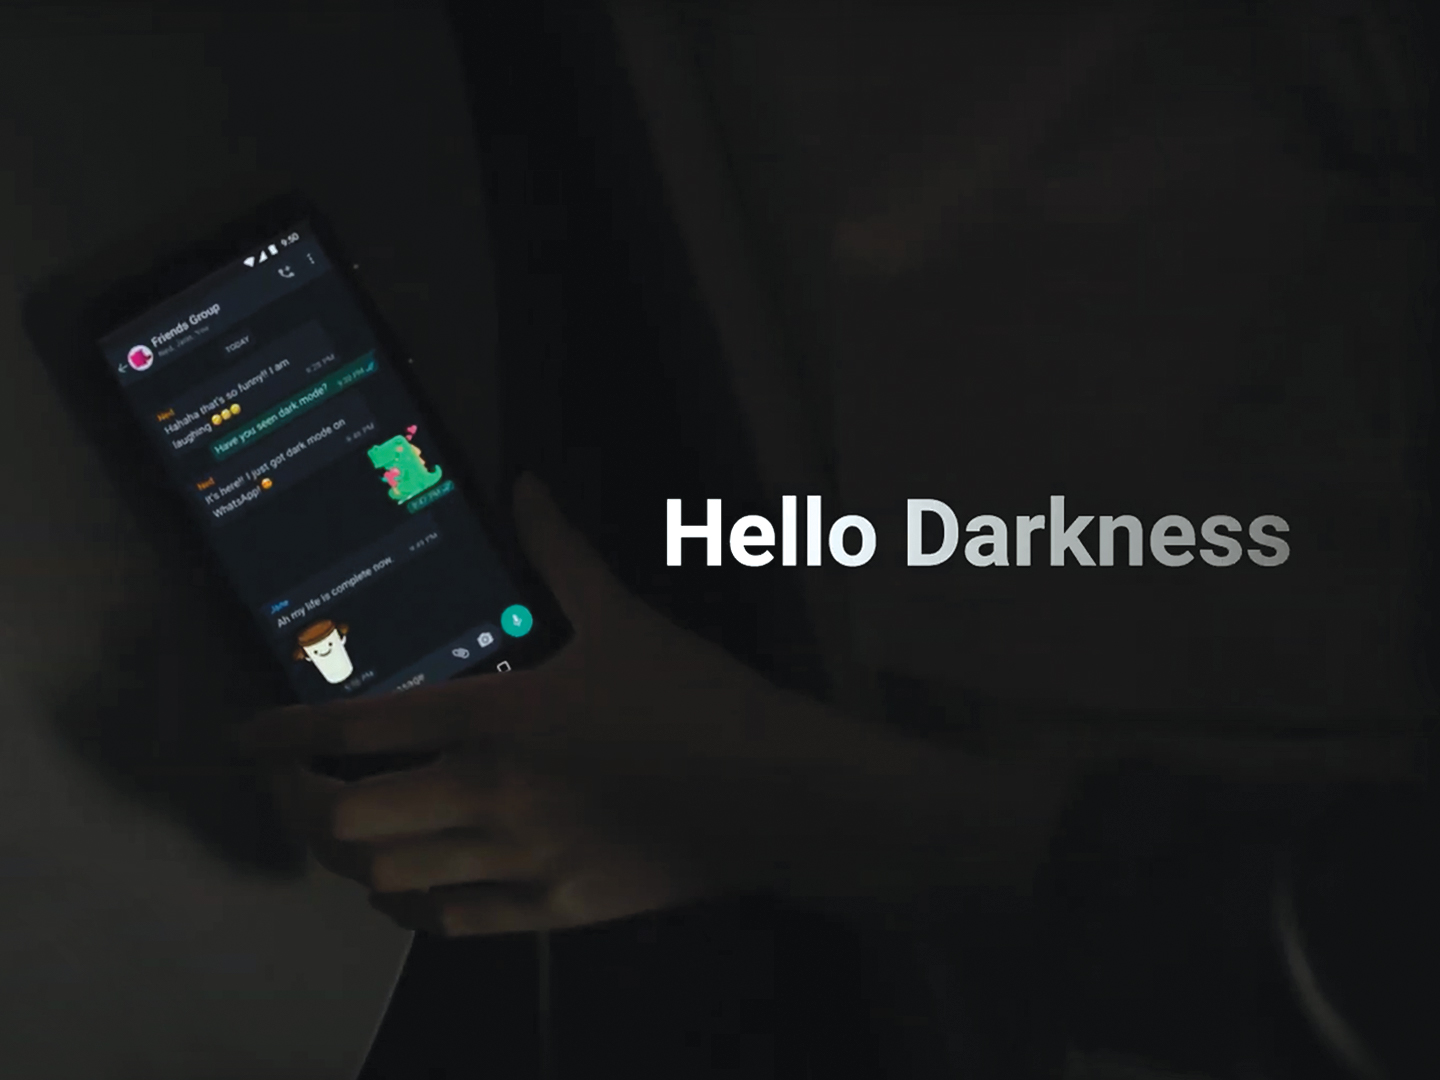 Screenshot of WhatsApp dark mode video (a hand reaching for a phone in a dark room)